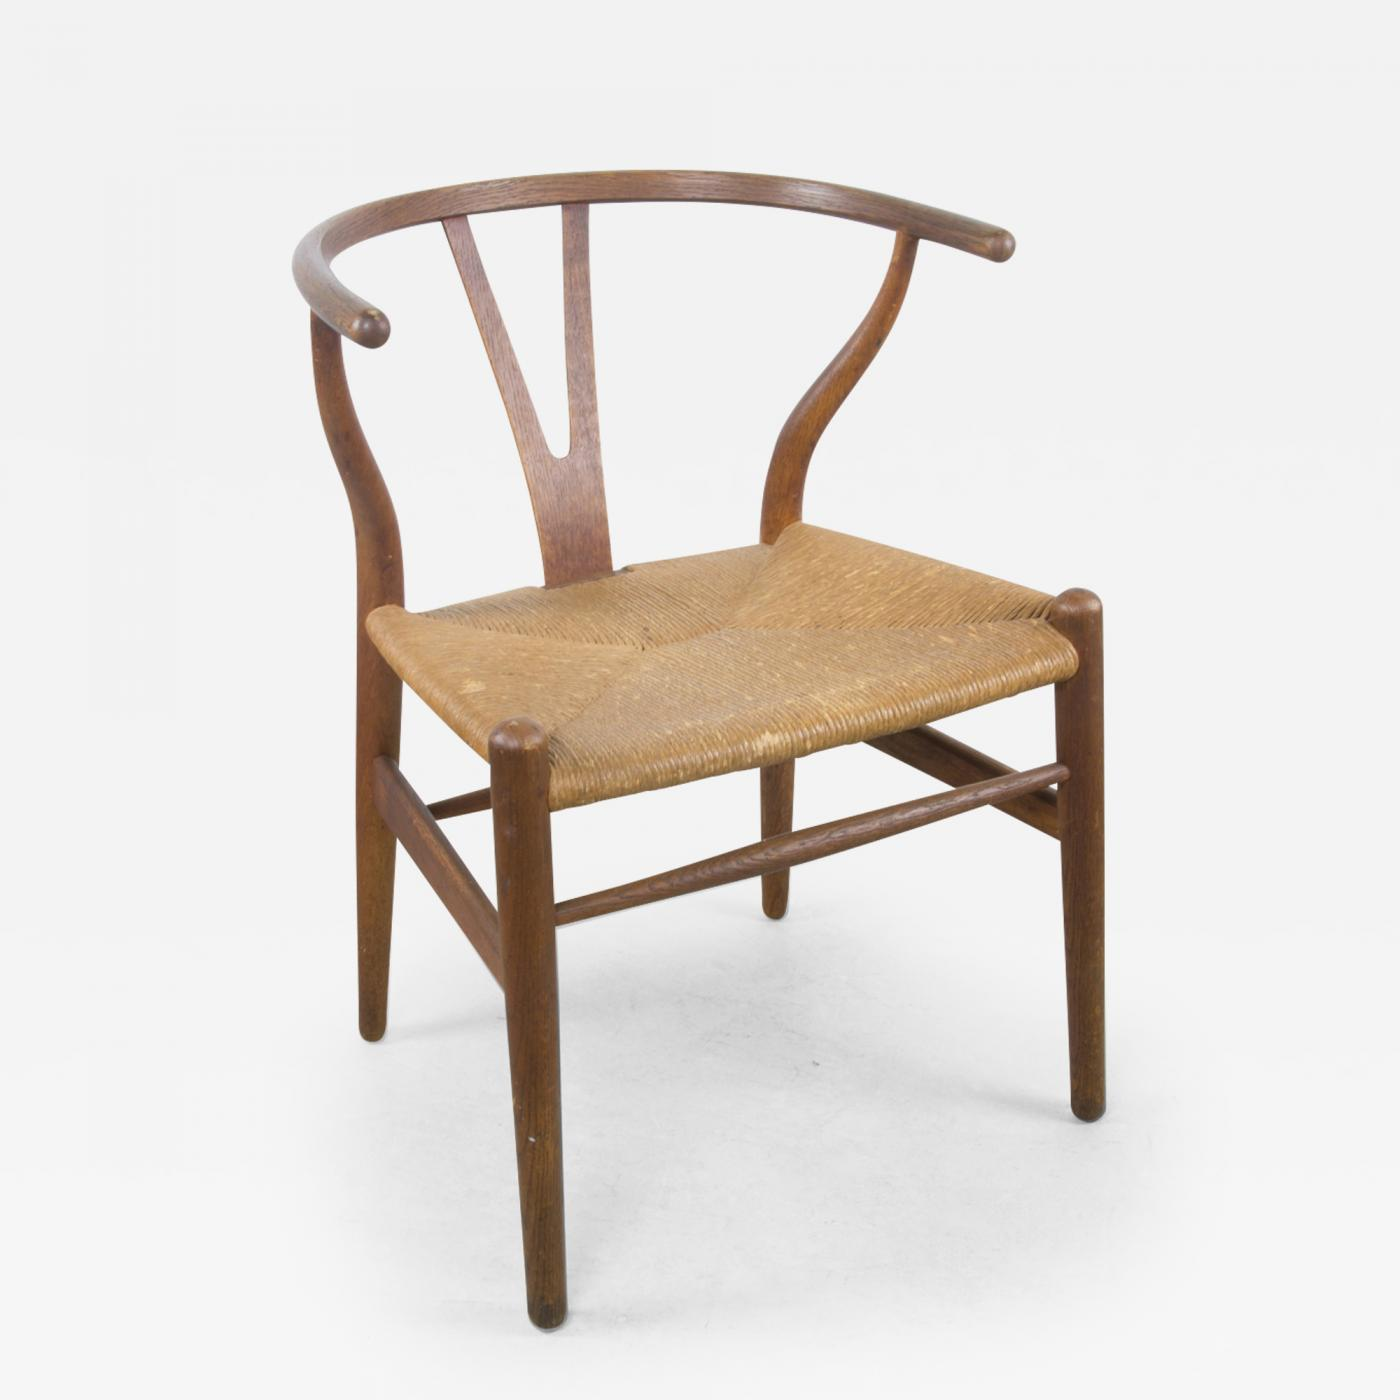 Wishbone Chairs Hans Wegner Early Hans Wegner Ch24 Wishbone Chair